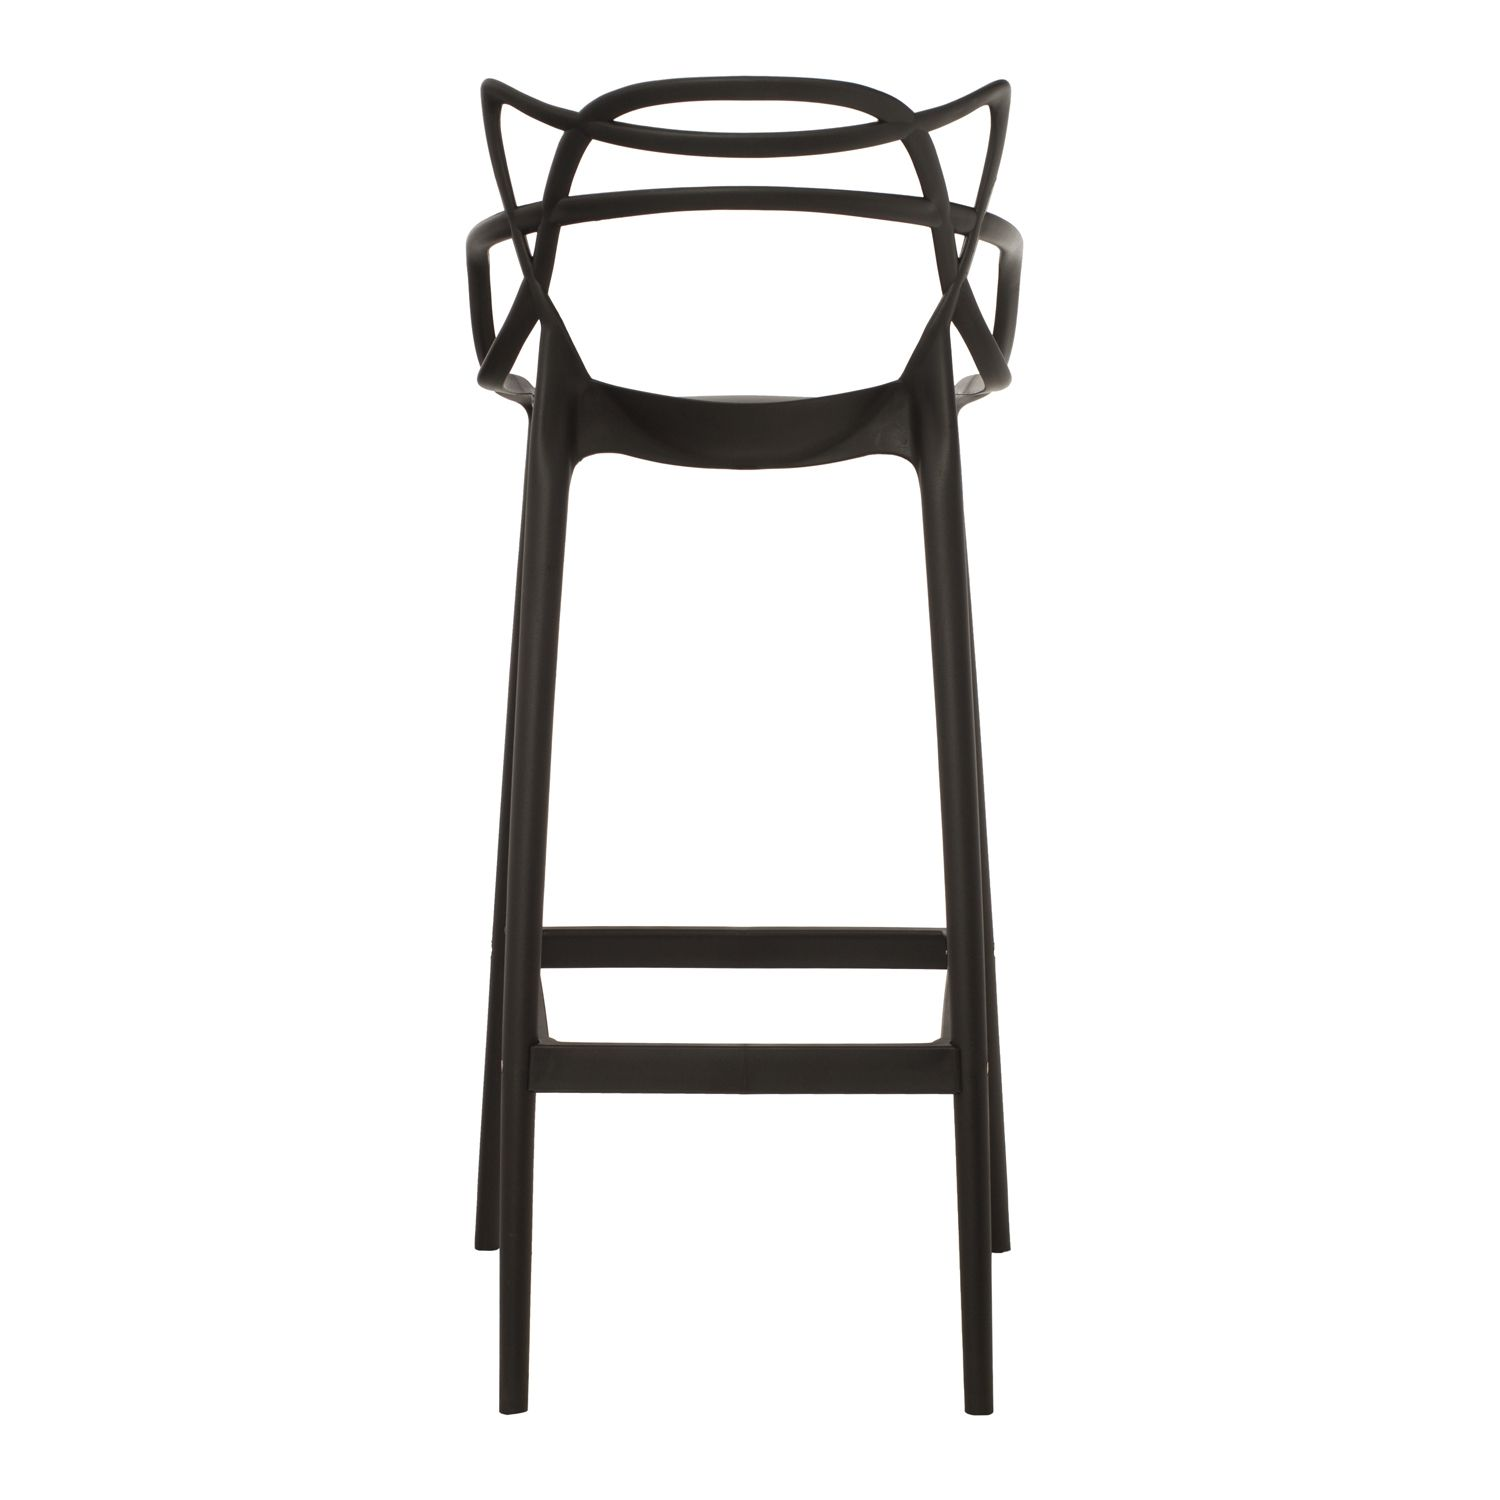 Tabourets Popsy Tabouret Coquelicot Mobilier Tabouret Tabouret Haut Mobilier